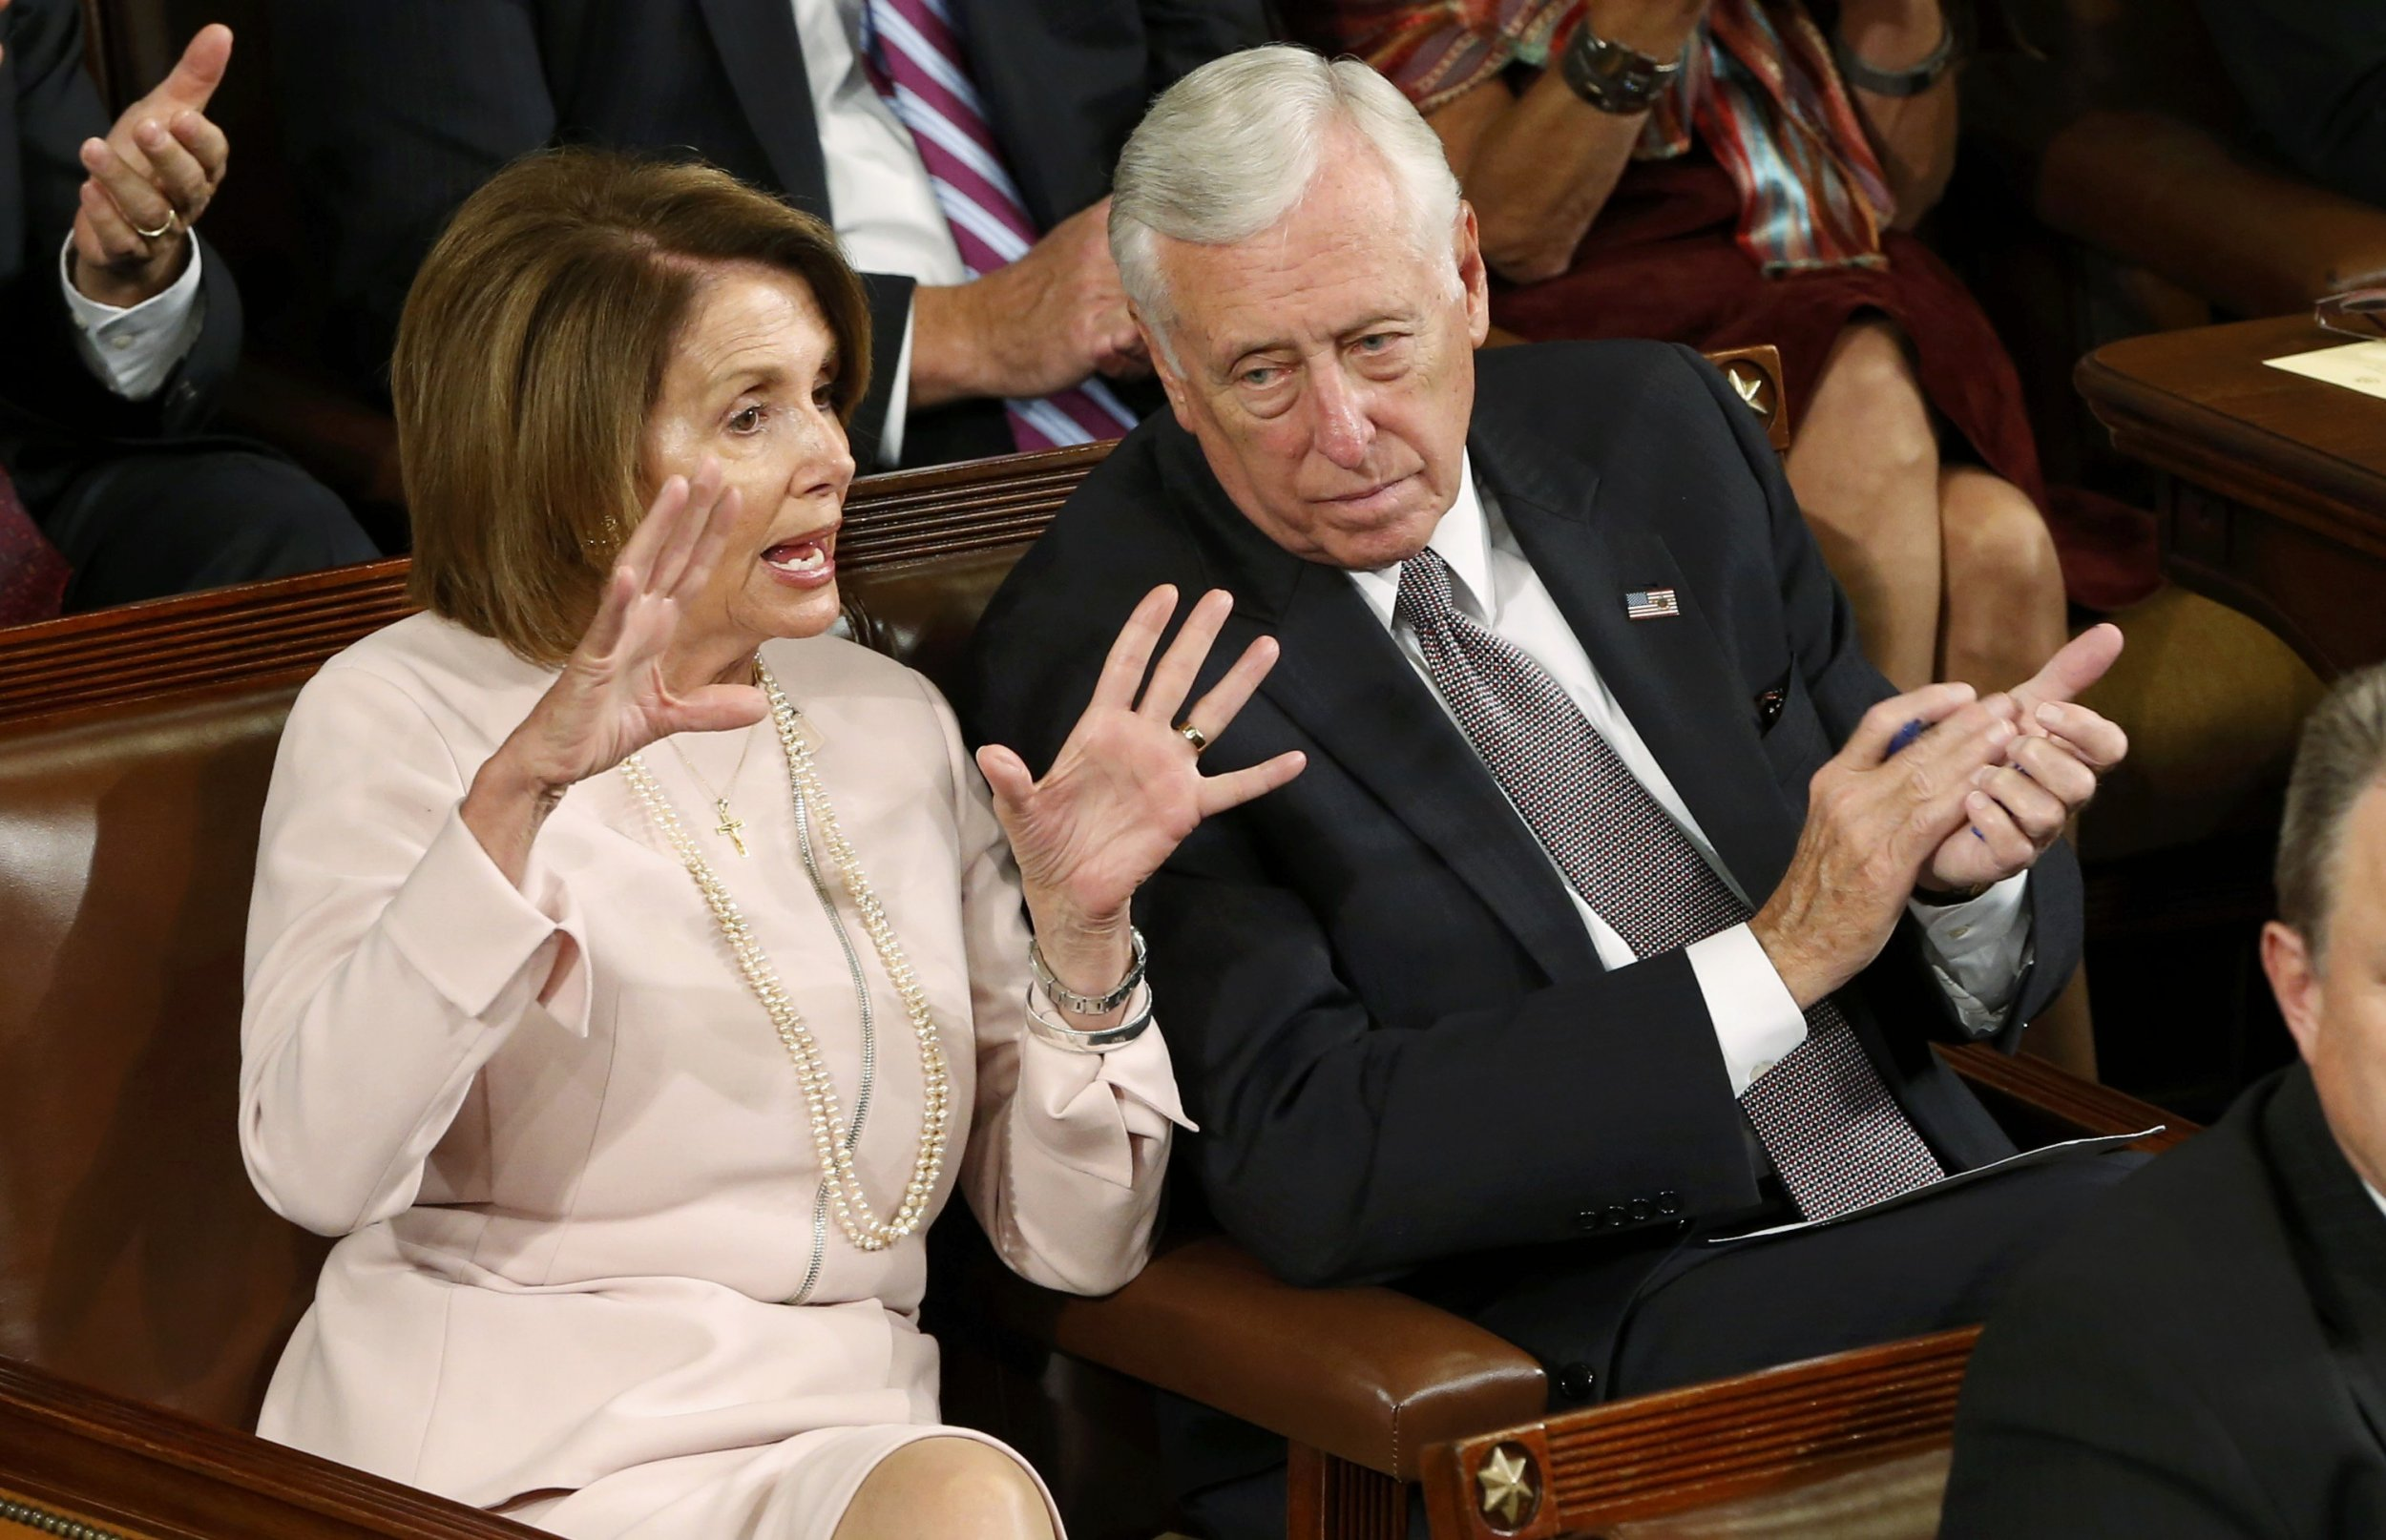 09_24_Pope-Congress_Pelosi-Hoyer_10